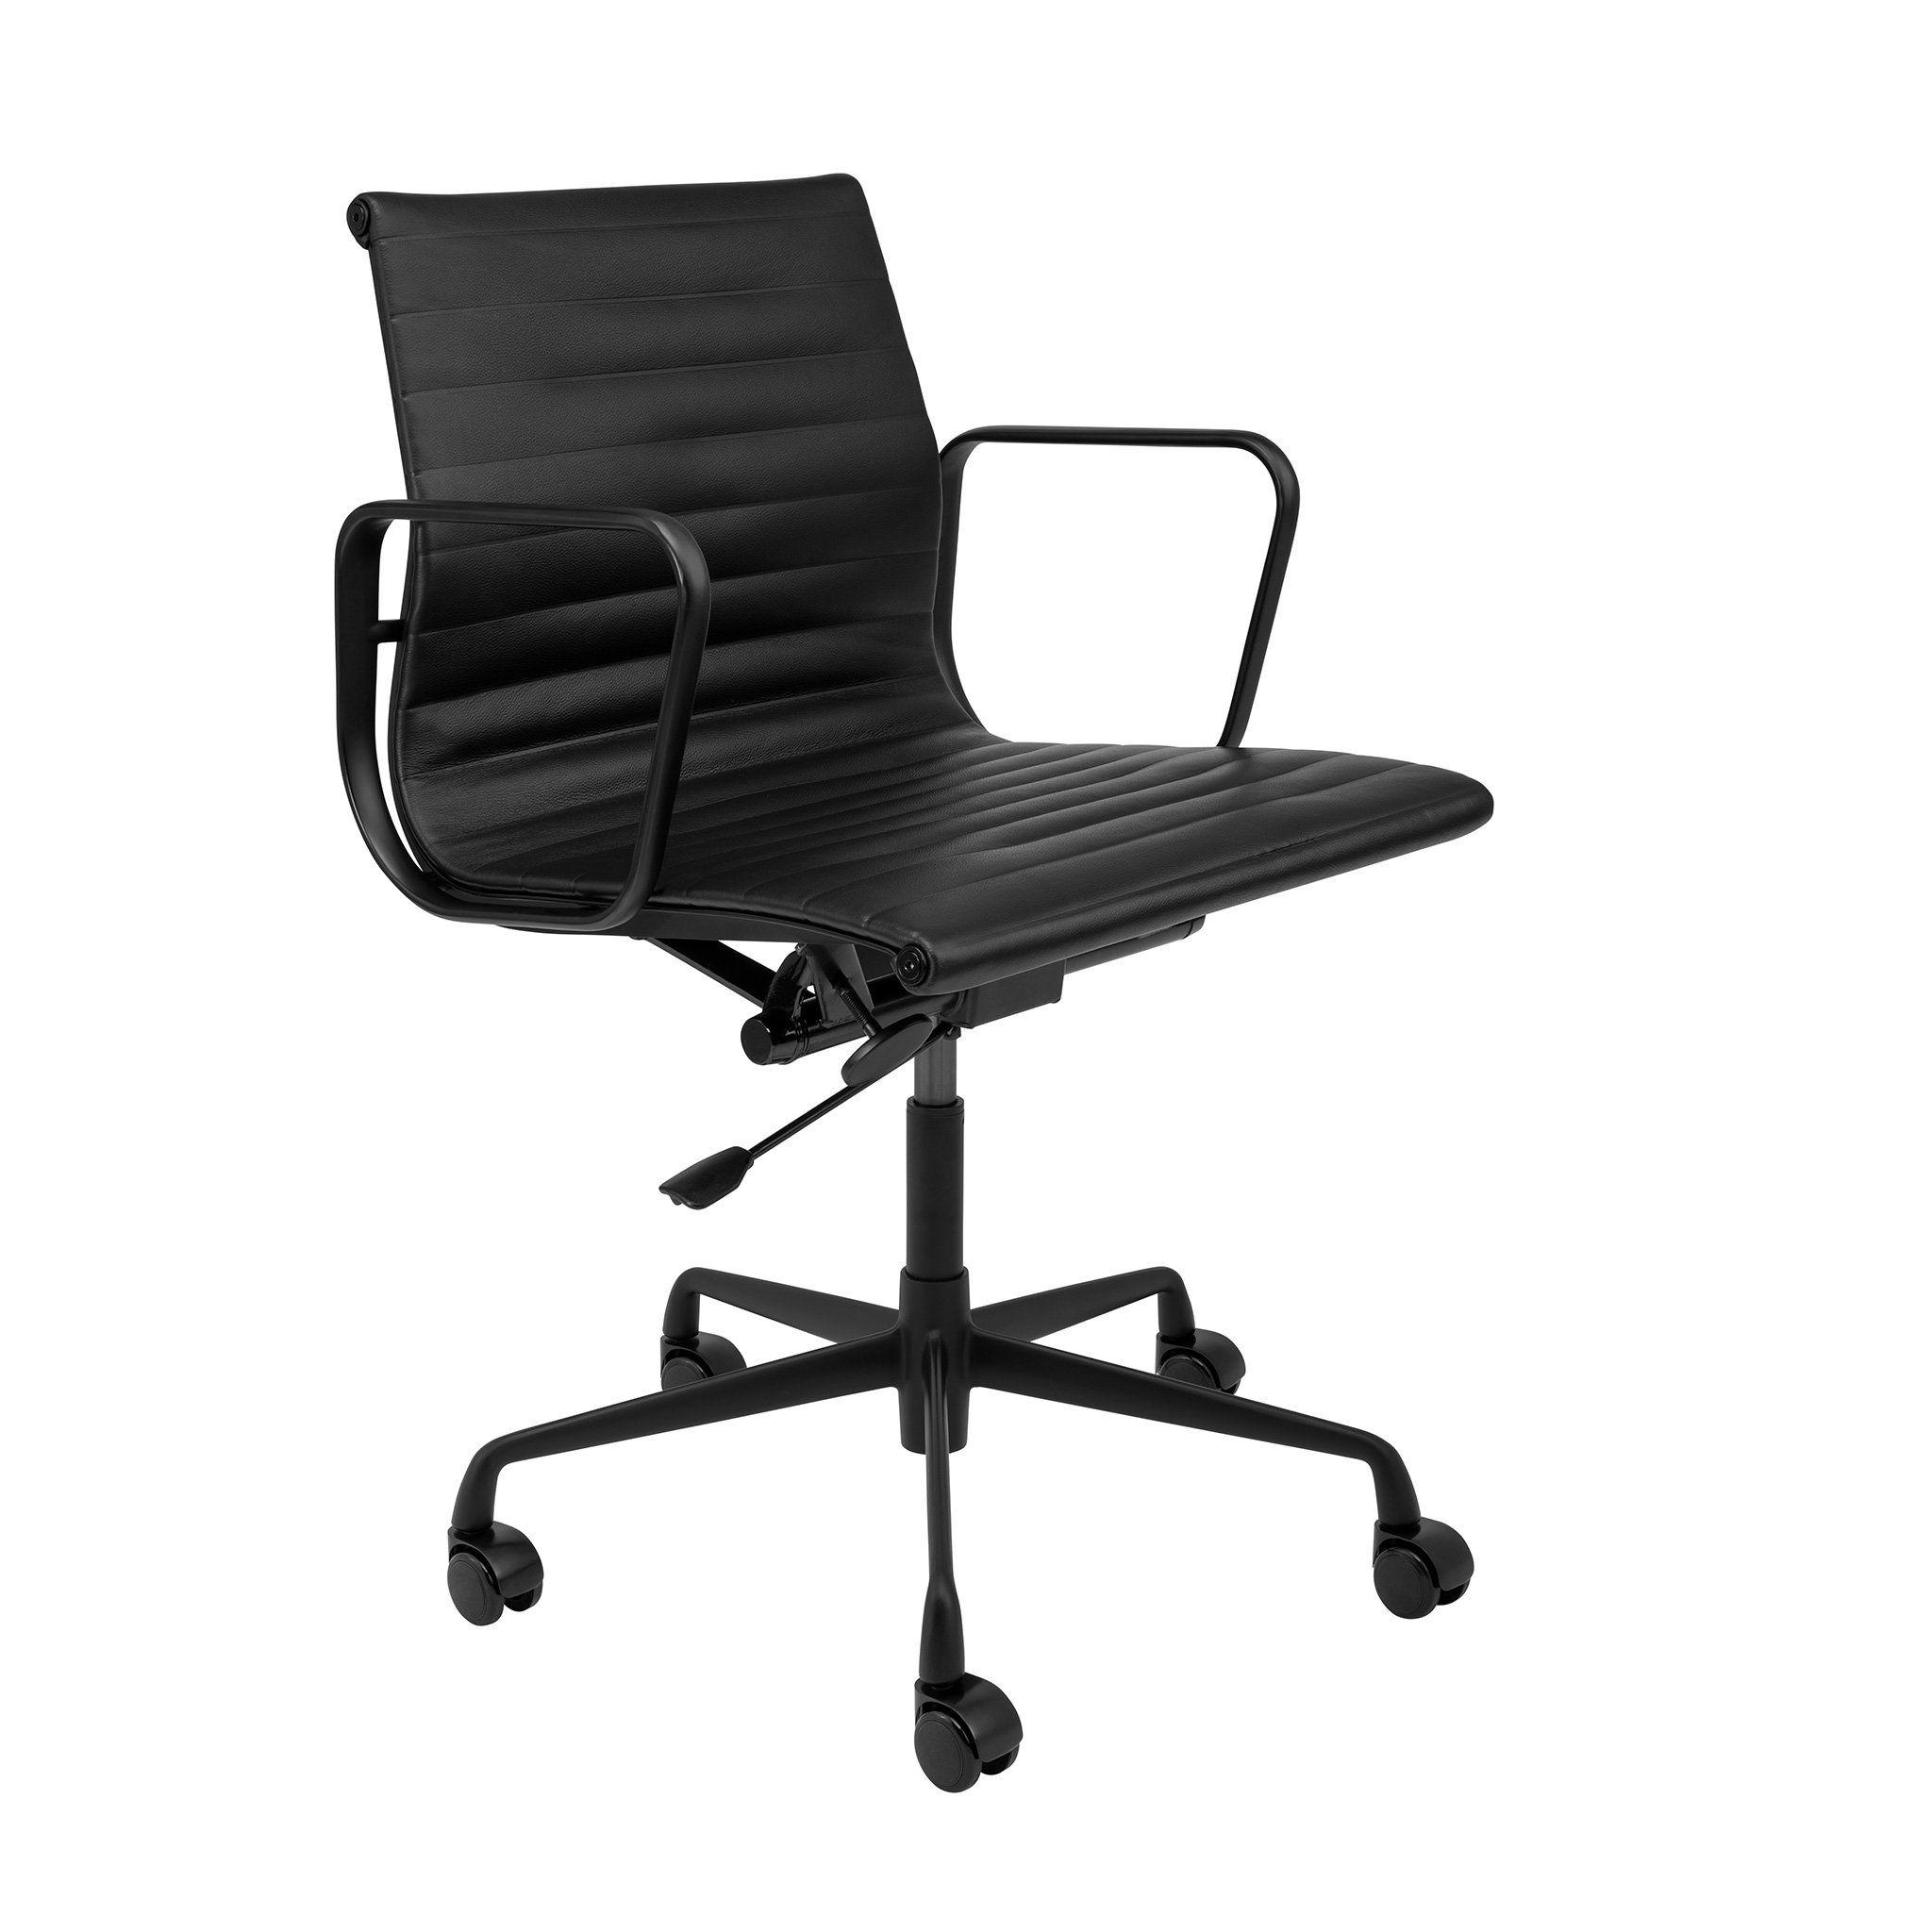 Soho Premier Ribbed Management Chair All Black Limited Edition Mid Century Modern Office Chair Black Office Chair Mid Century Modern Office